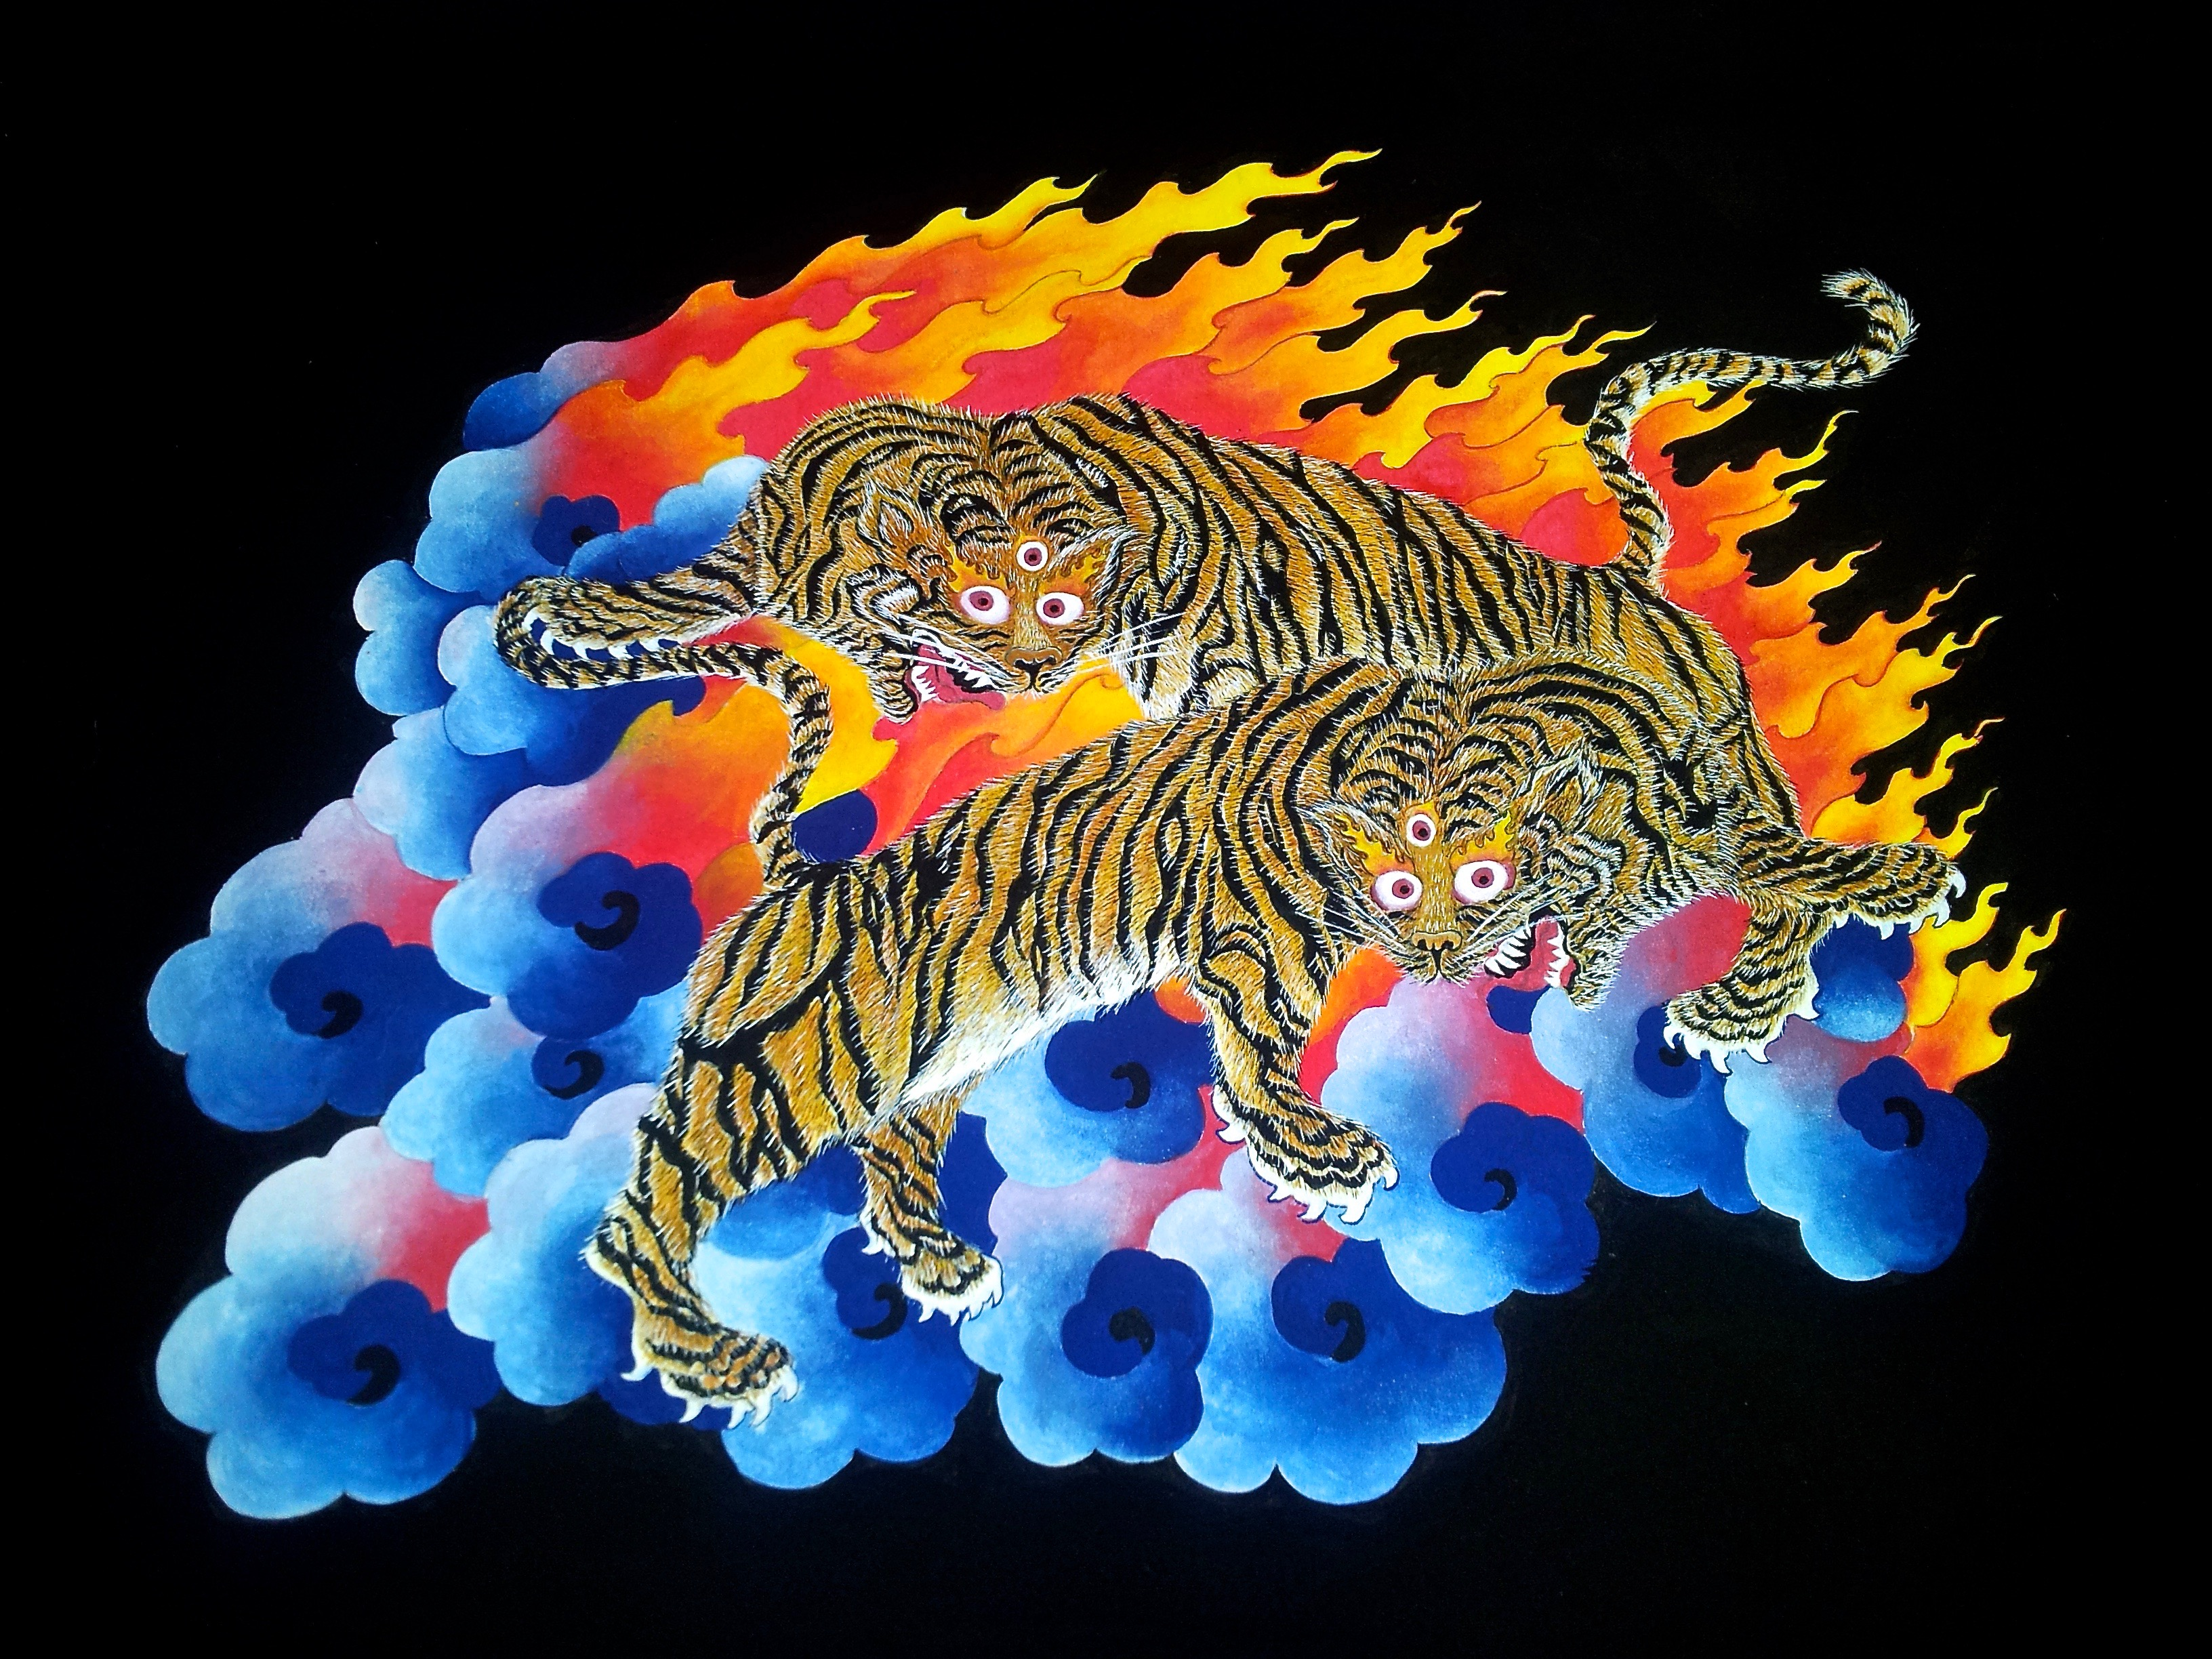 Playful Tigers 48cm x 42cm €250,00